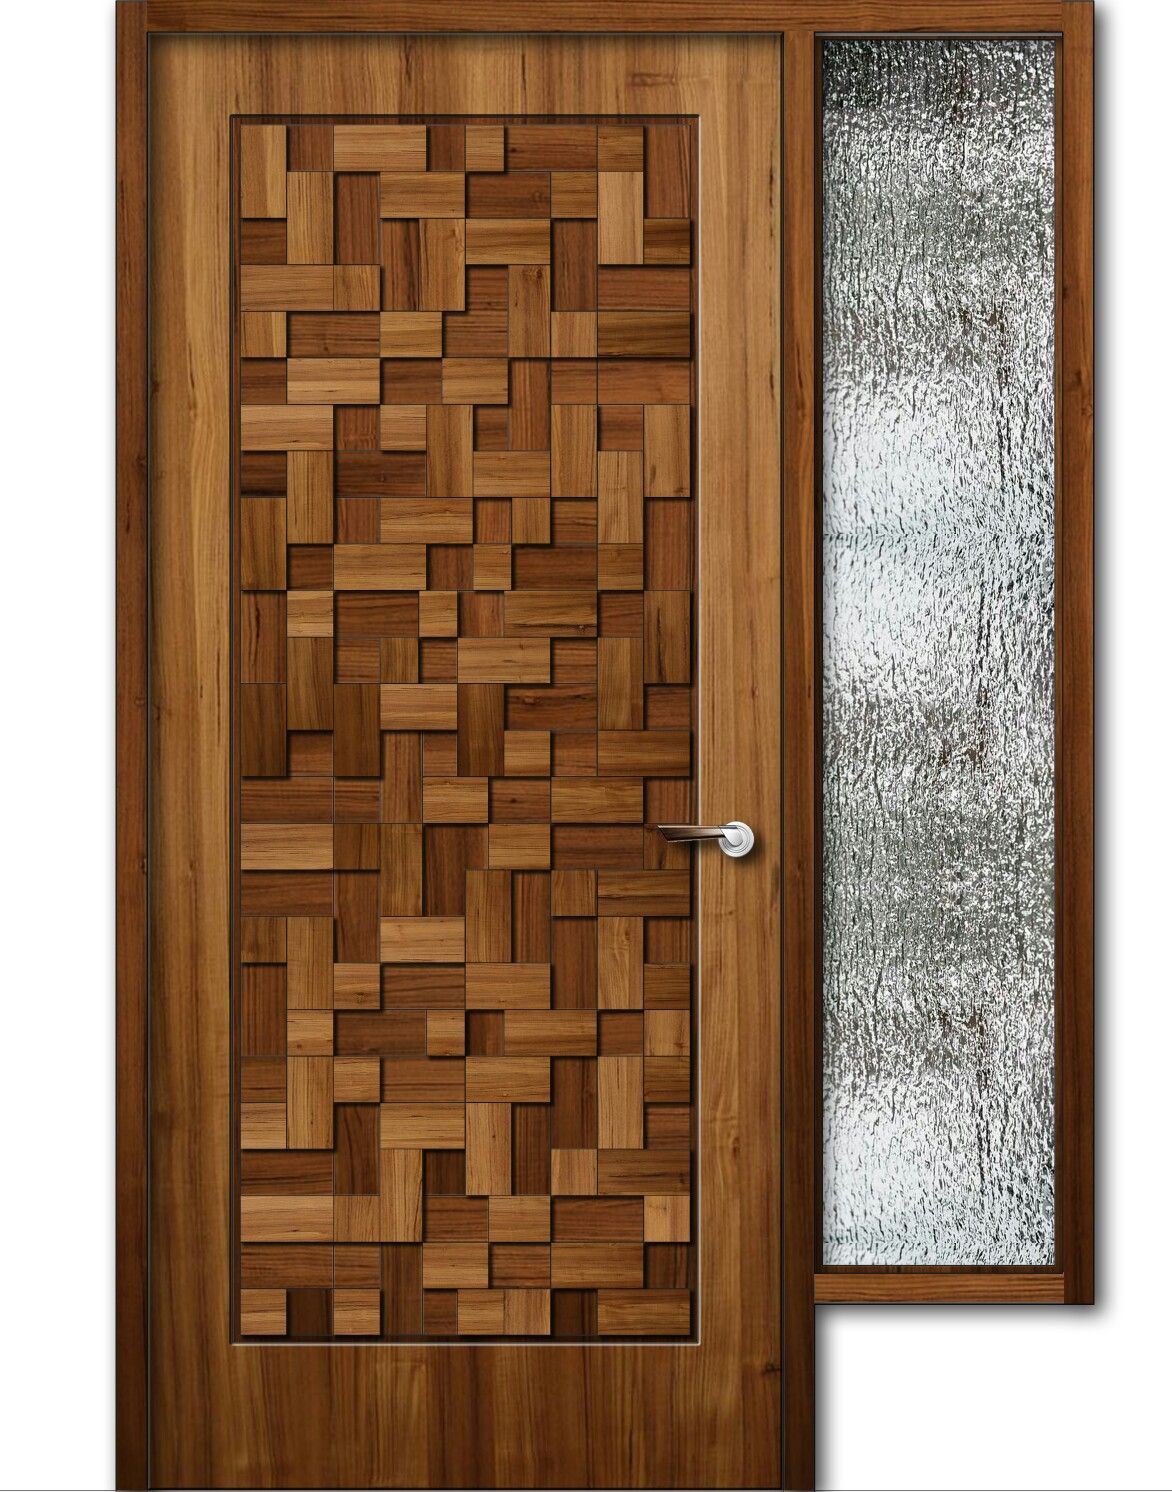 Teak wood finish wooden door with window 8feet height for Main door panel design